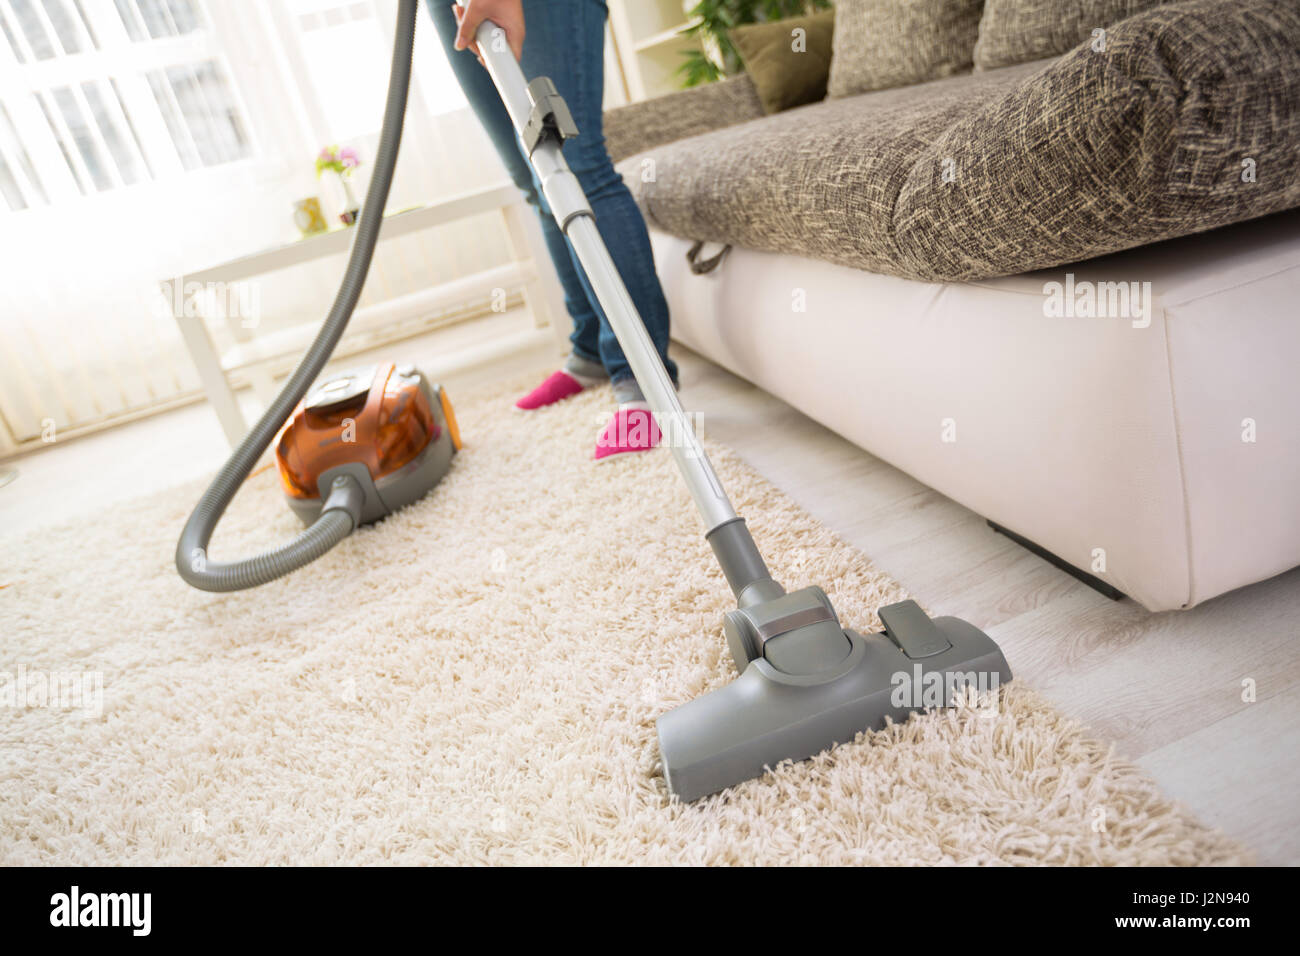 Cleaning Carpet With Vacuum Cleaner In Living Room Stock